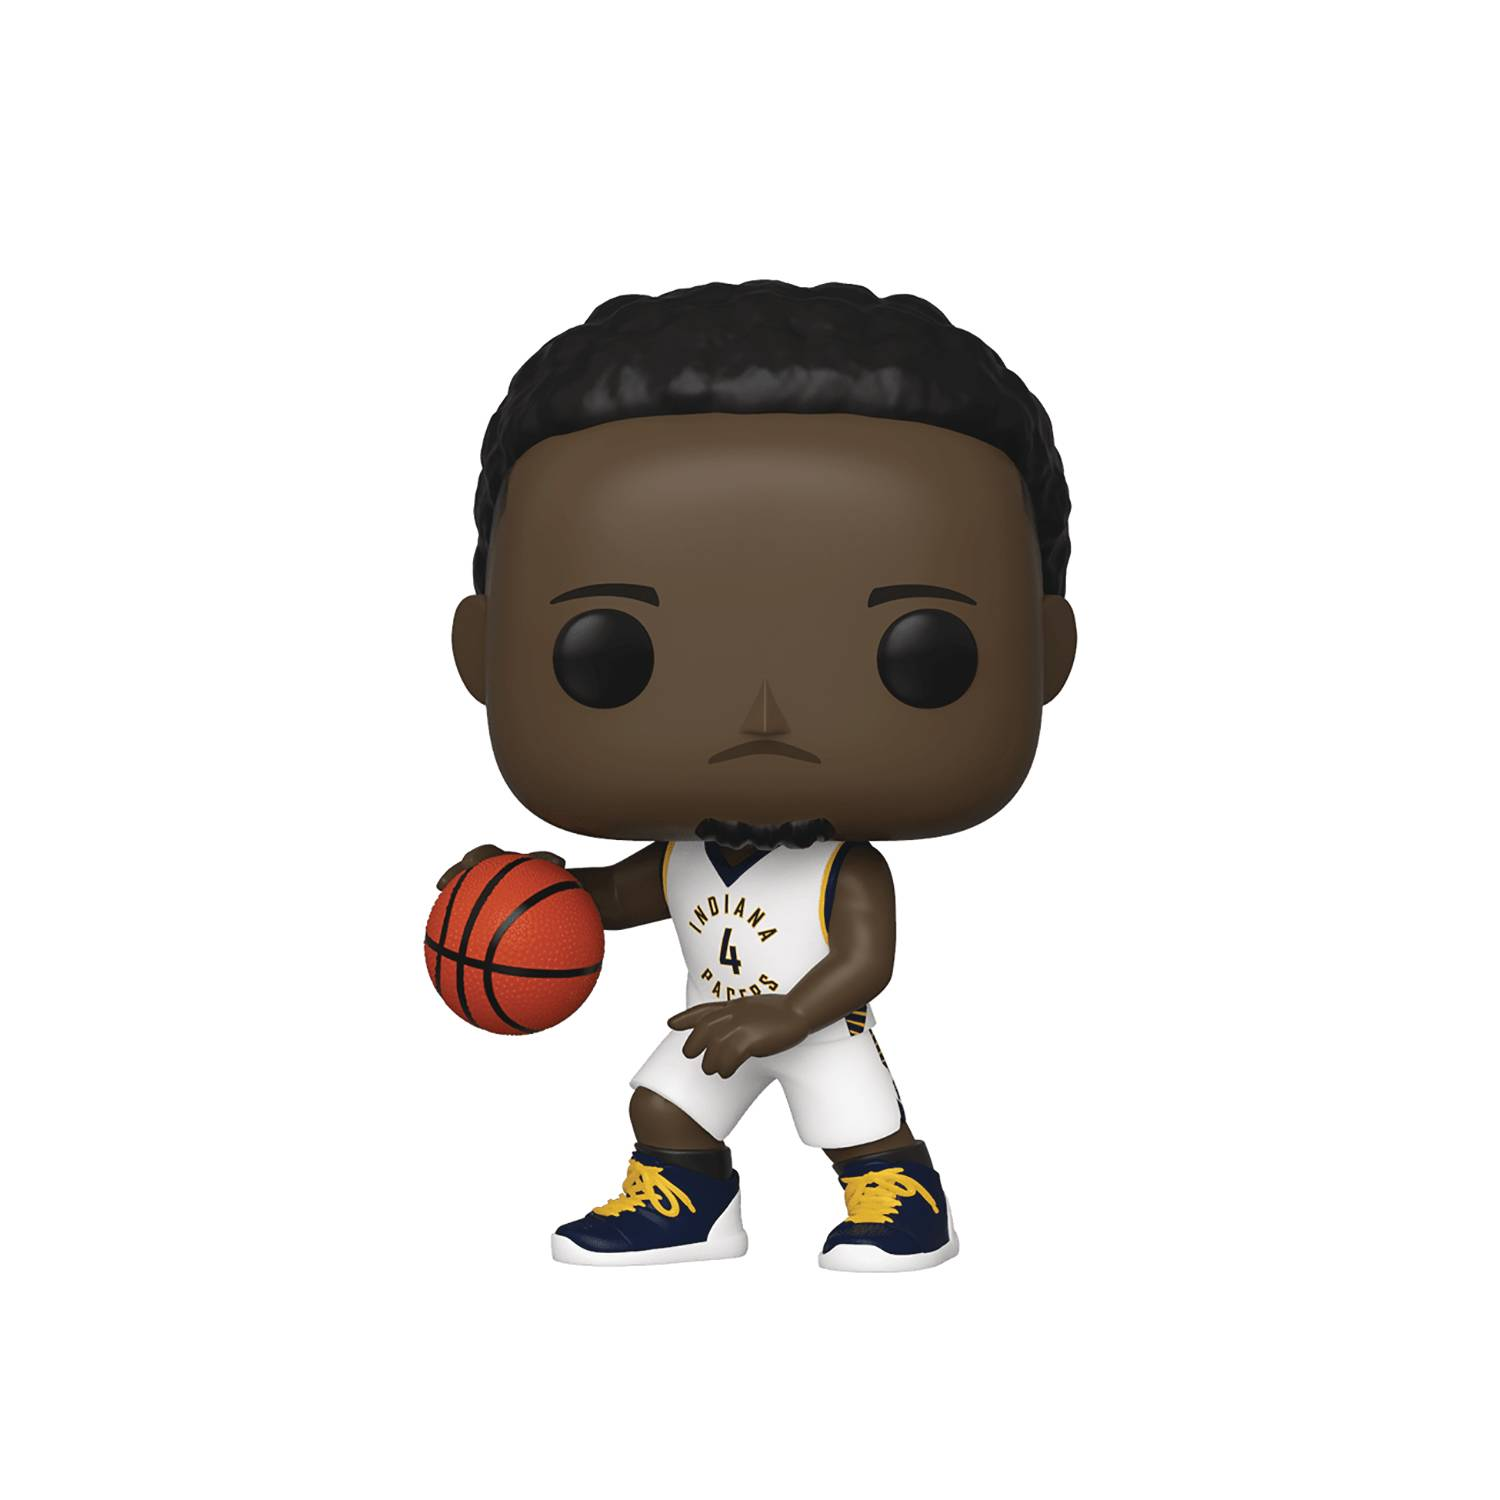 POP NBA INDIANA PACERS VICTOR OLADIPO VINYL FIGURE